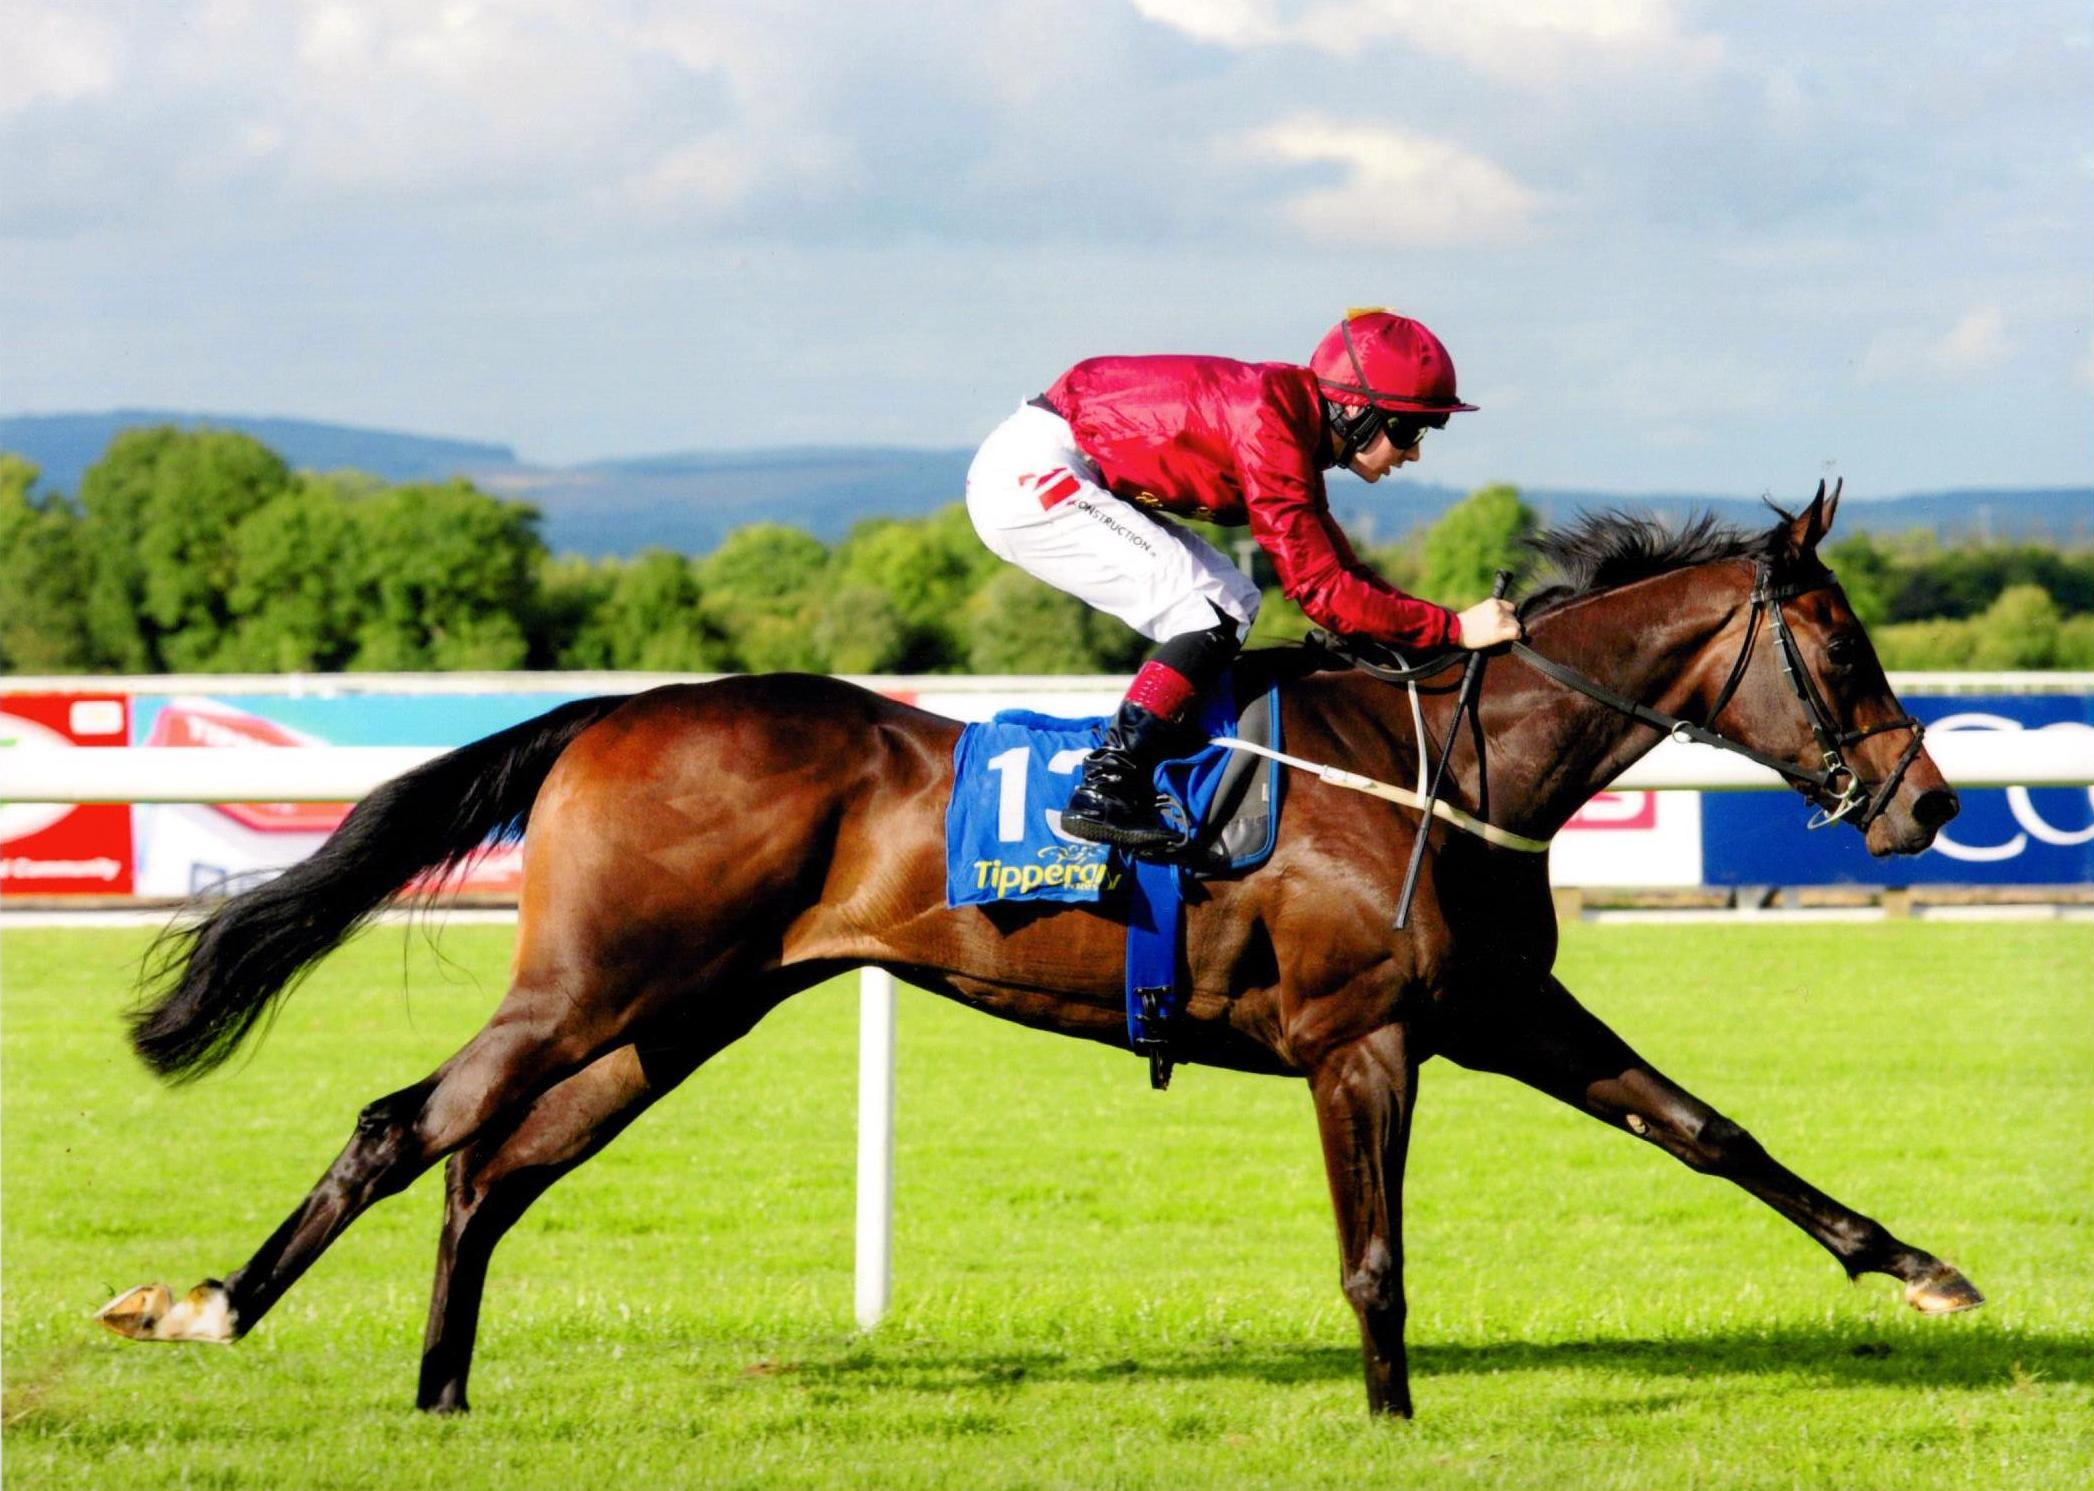 SWEET SOUNDS scores at Tipperary on debut 5th August 2016